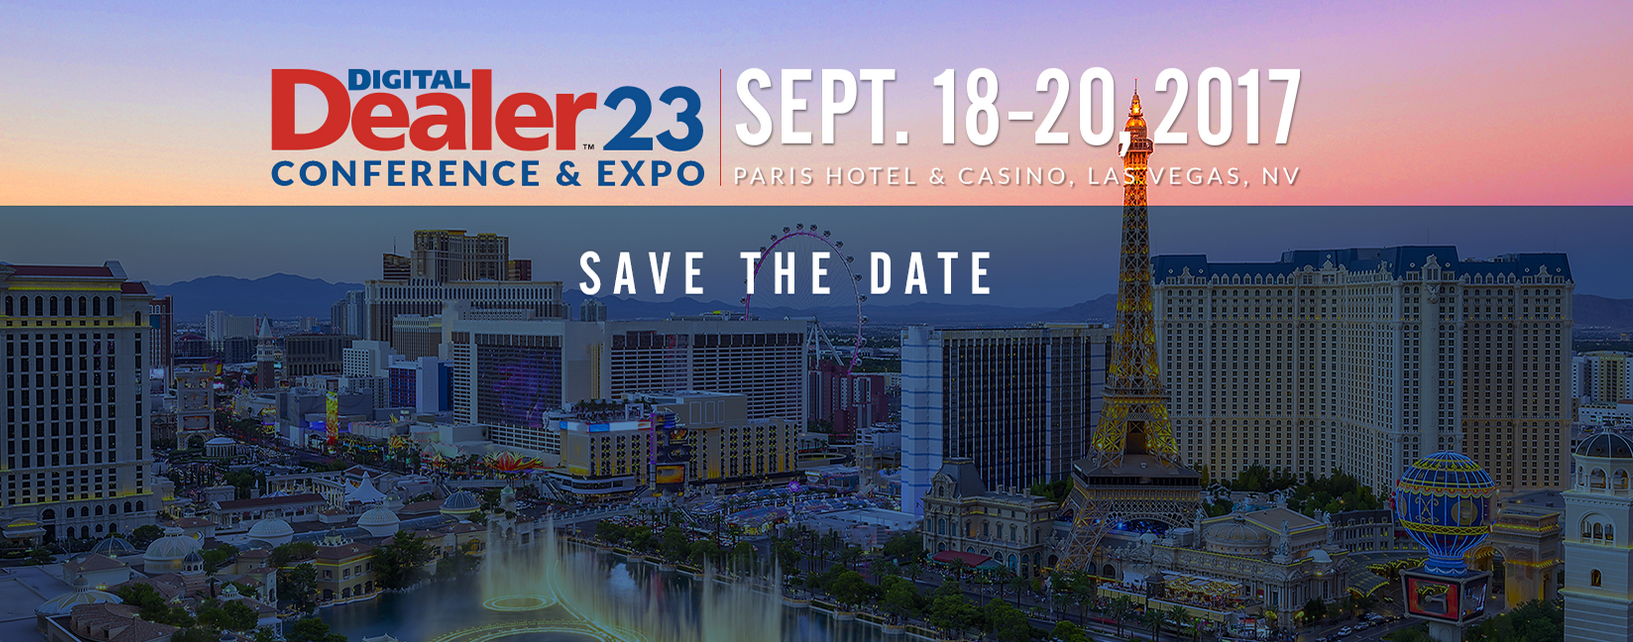 CBC will be exhibiting at Digital Dealer 23 (Booth 936) Sept. 18-20, 2017 post thumbnail image